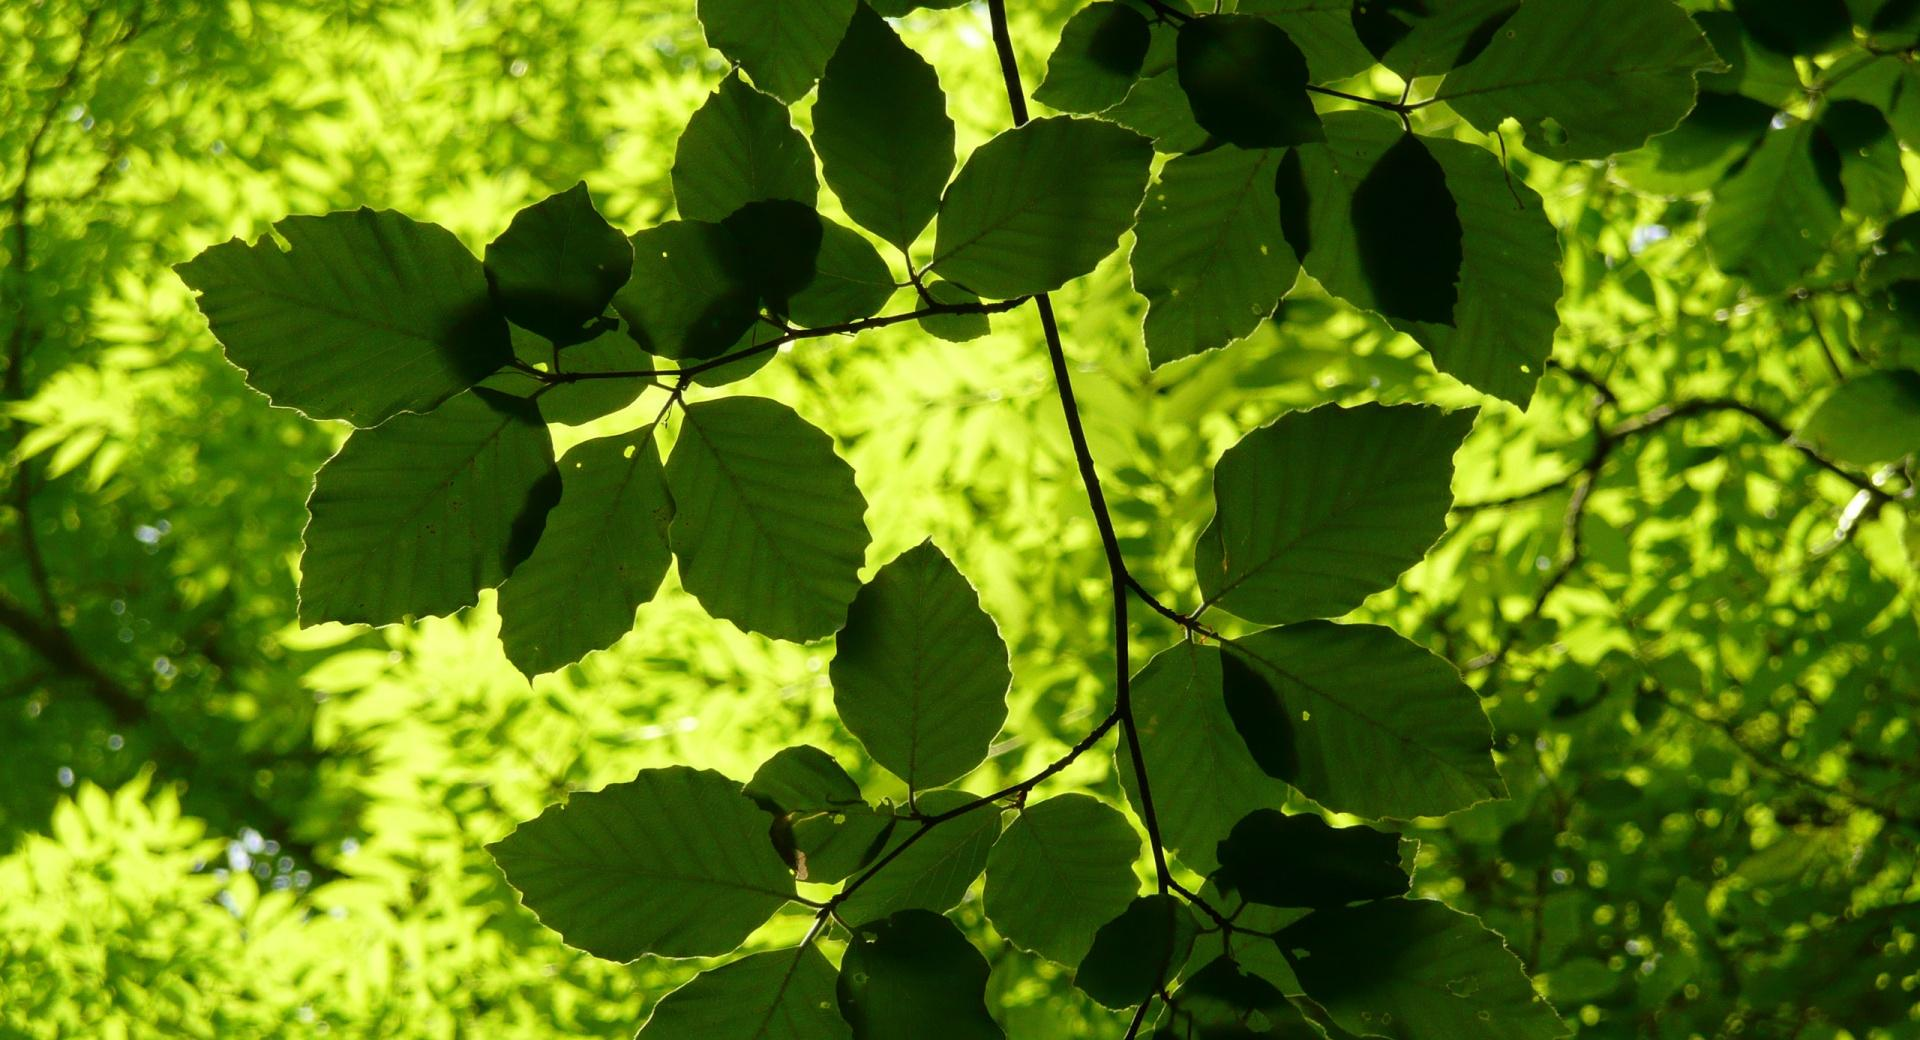 Green Leaves Branch wallpapers HD quality